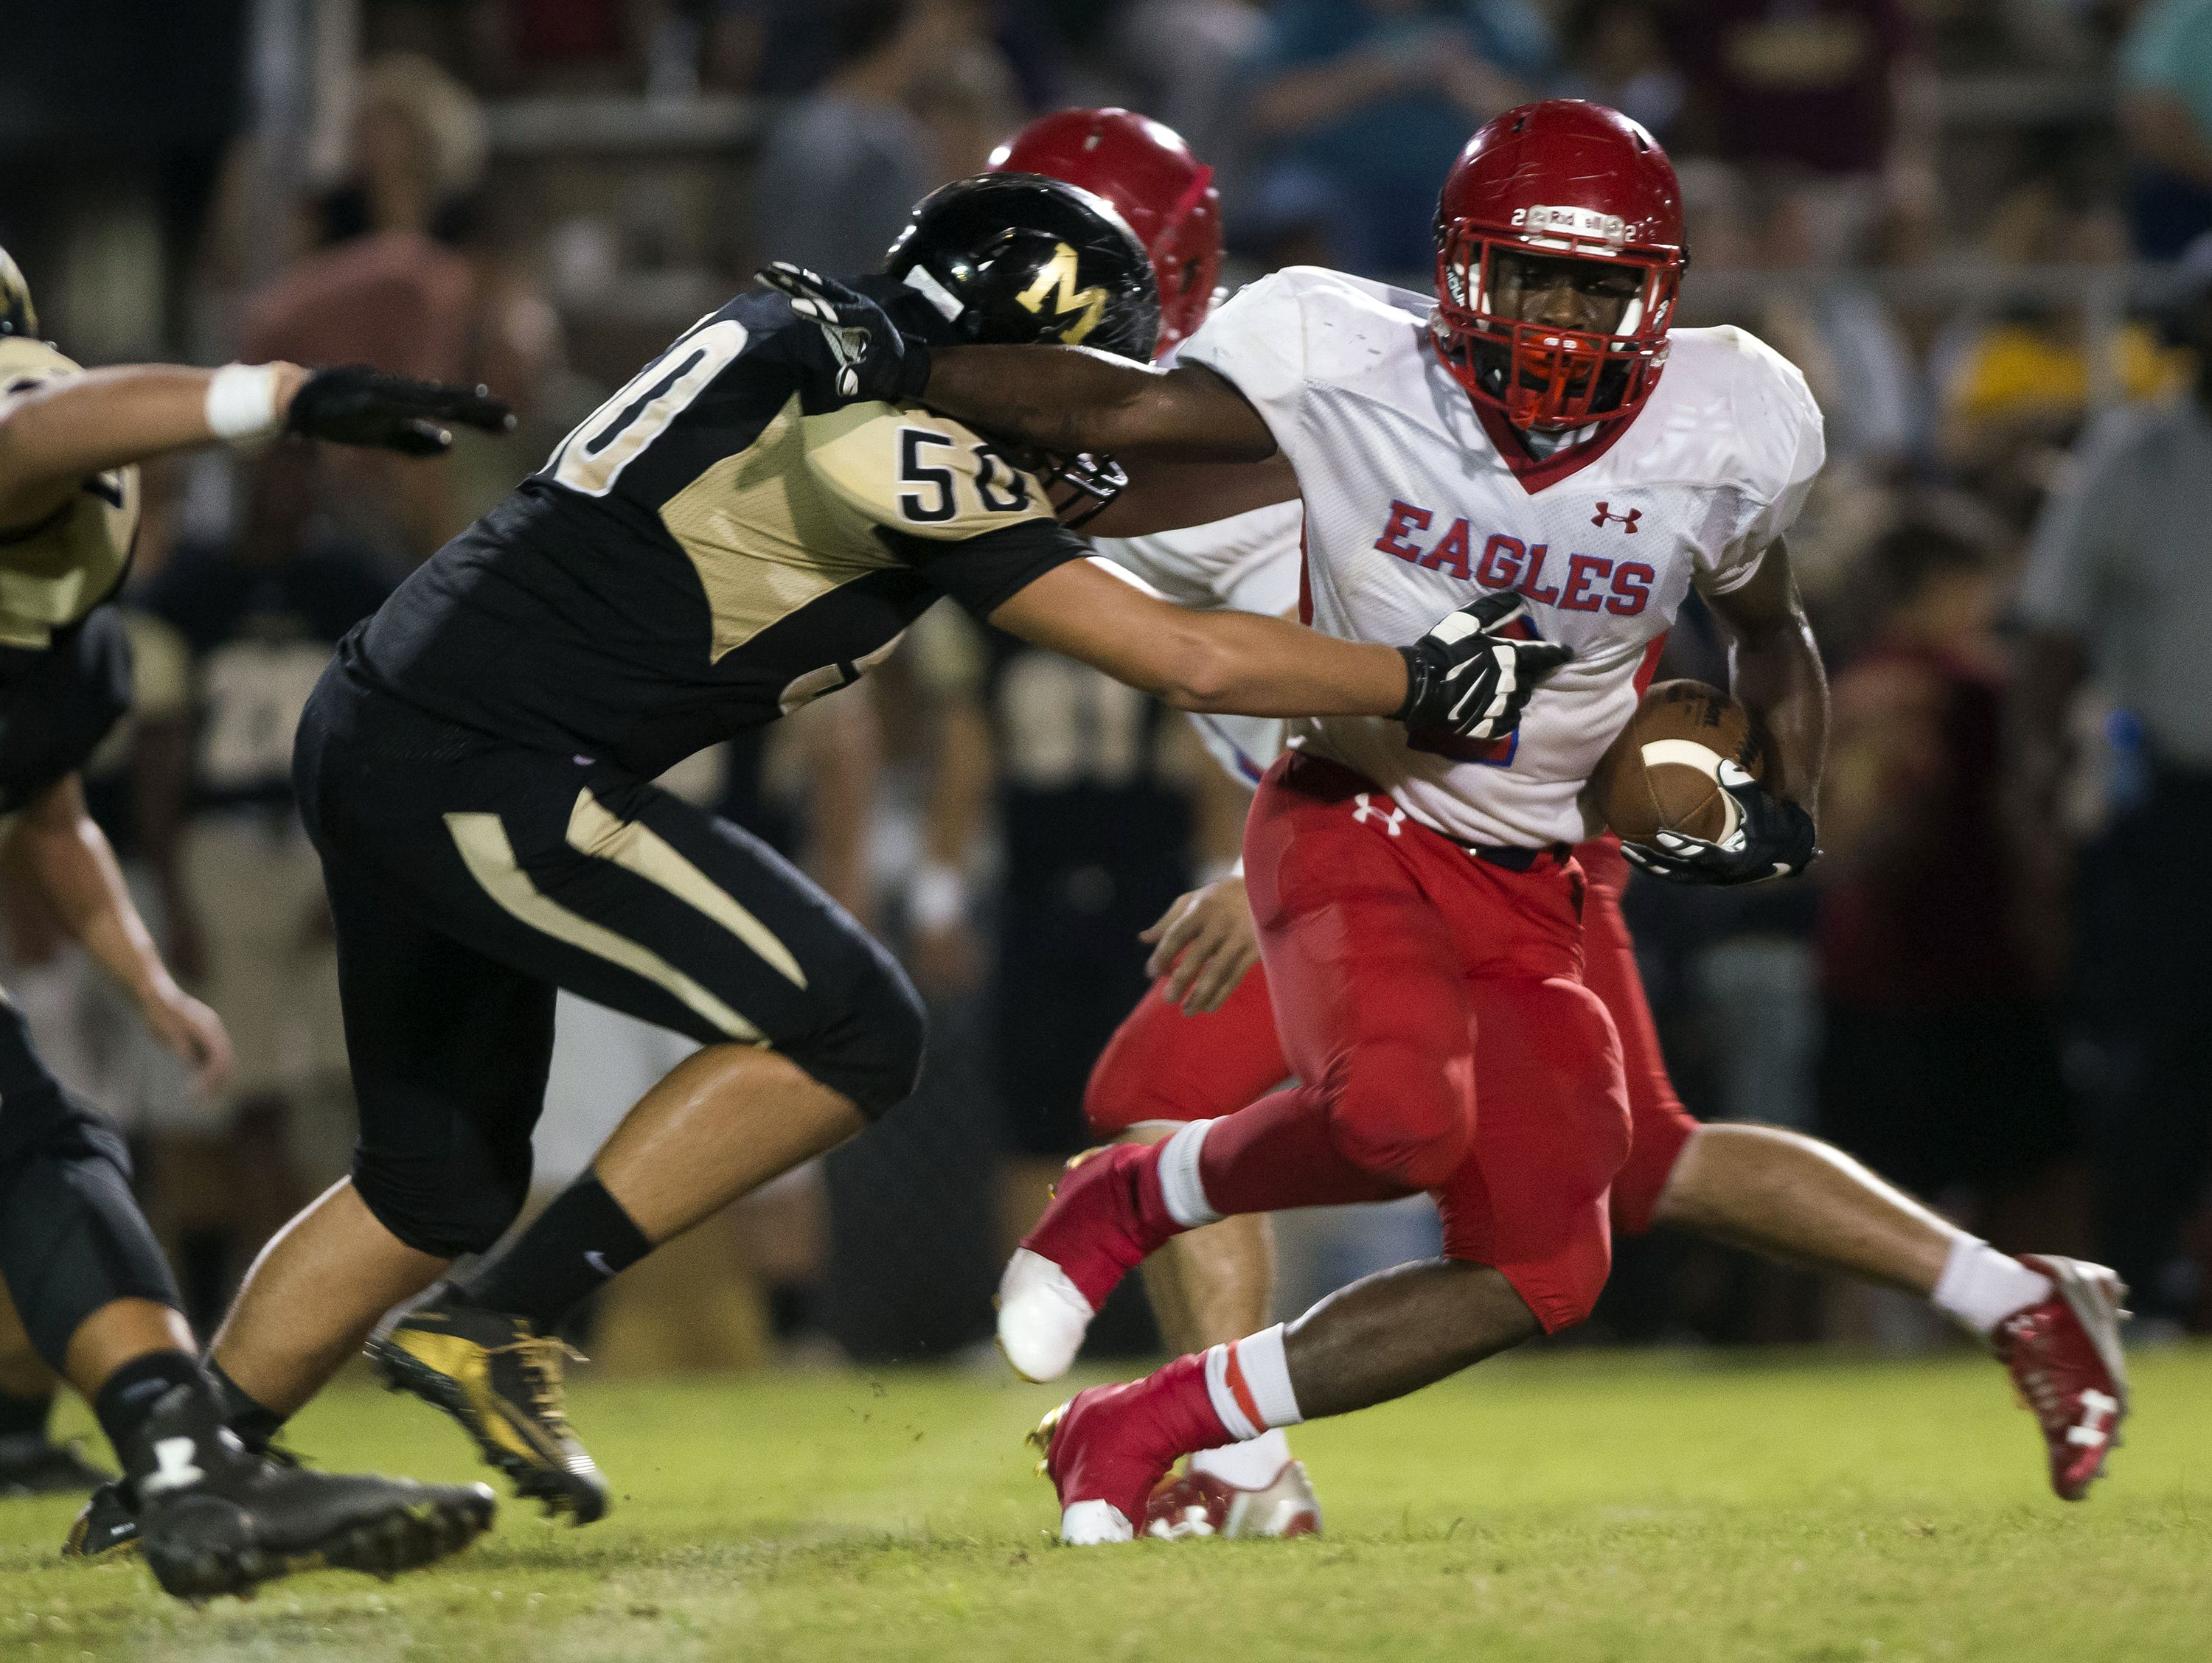 Pine Forest High's Jaden Gardner, (No. 2) gets caught behind the line by Milton High's Keenan Black, (No. 50) during the first quarter in Friday night's game against the Panthers.